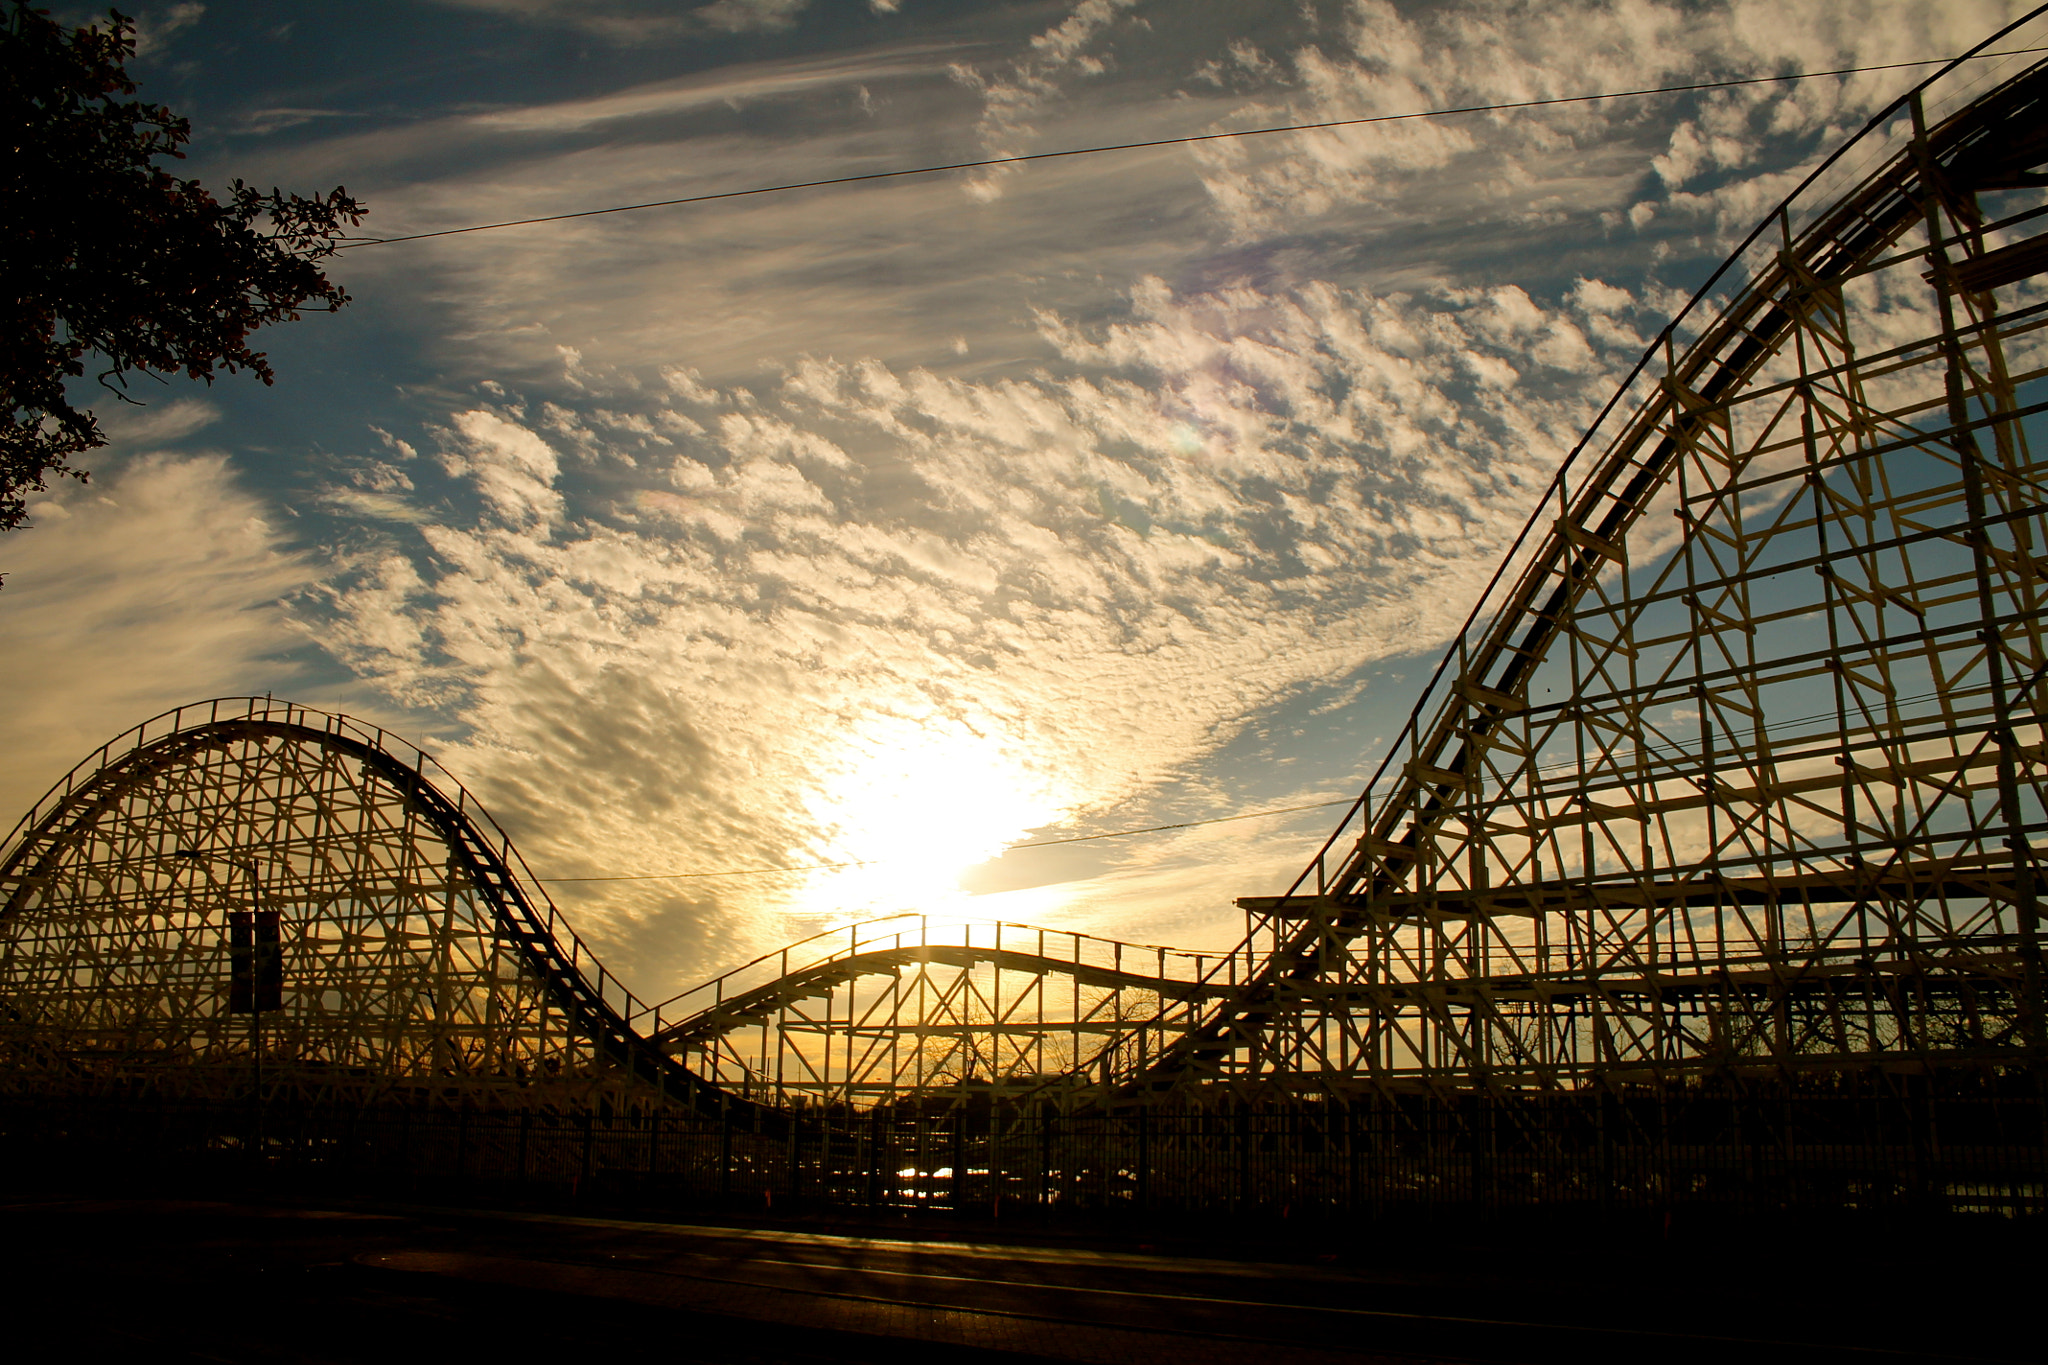 Photograph Roller Coaster Sunset by Janice Marie on 500px